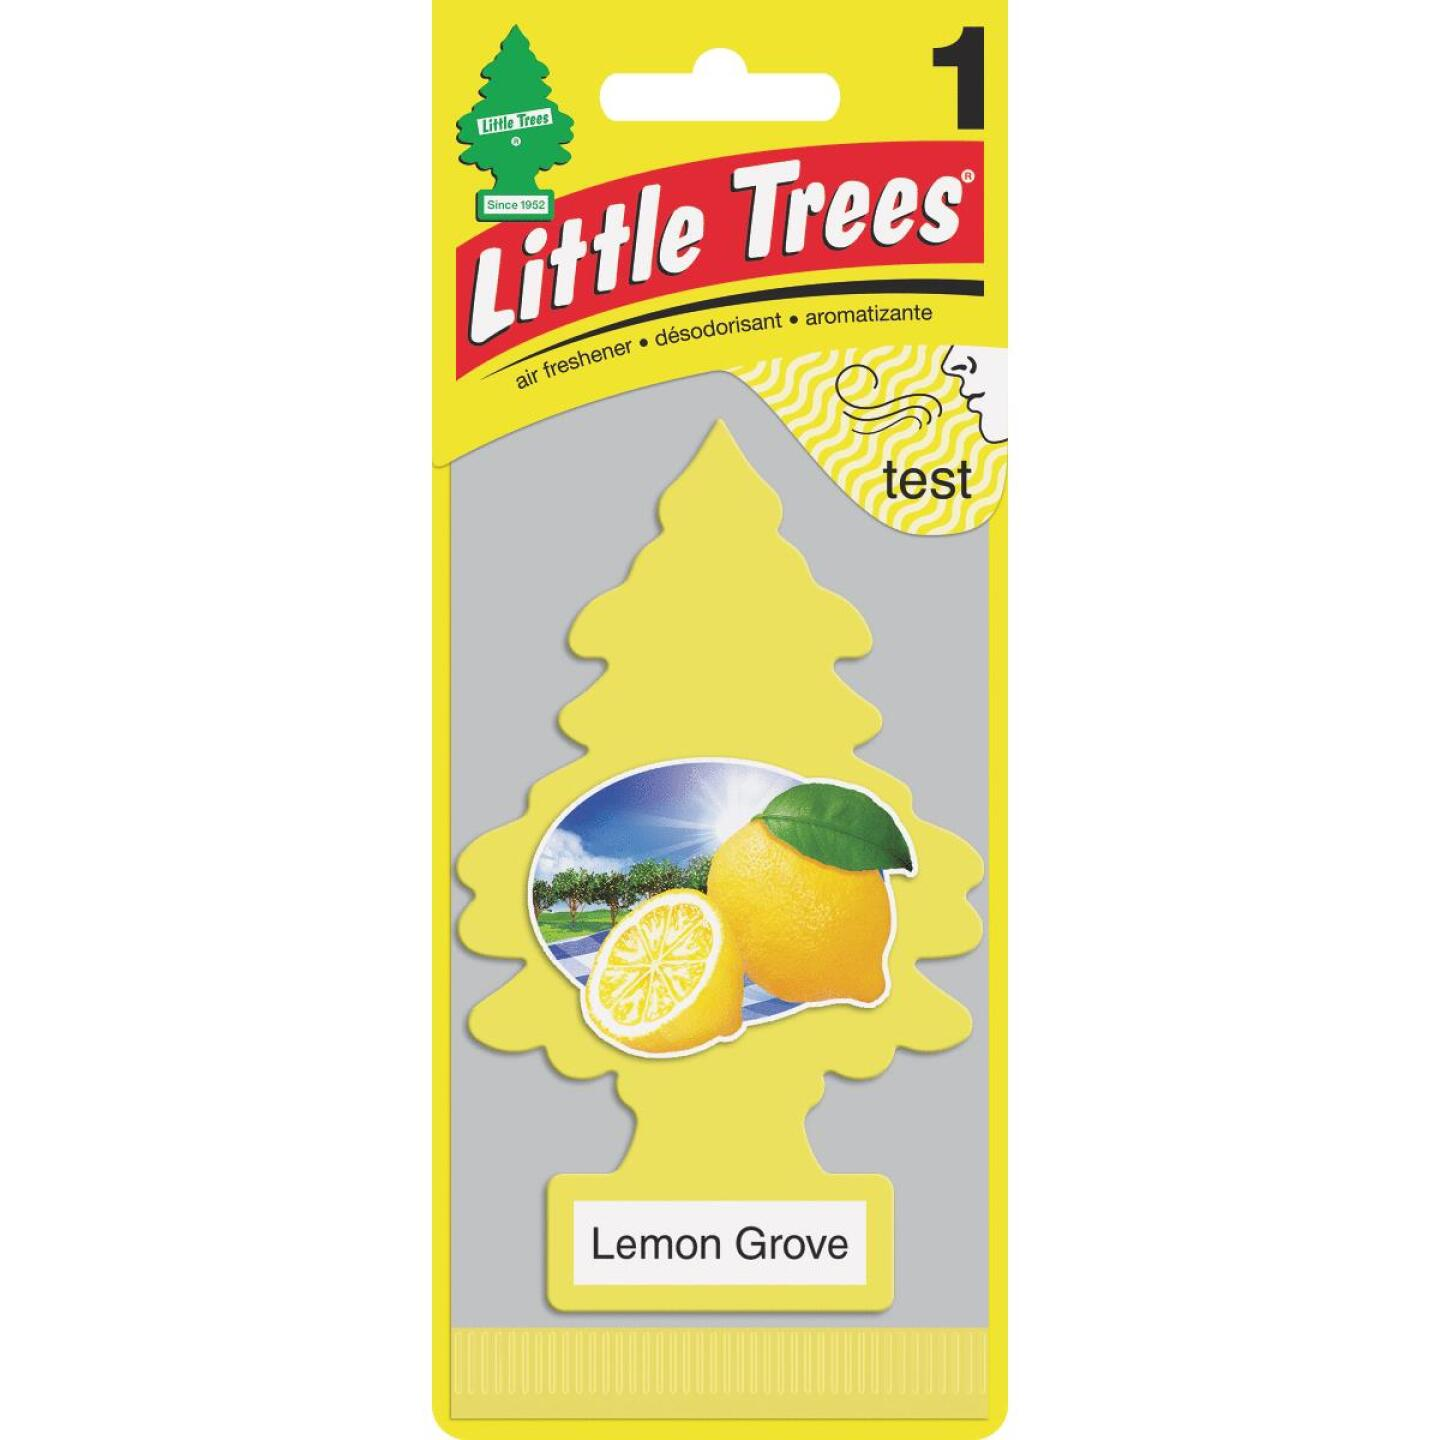 Little Trees Car Air Freshener, Lemon Grove Image 1